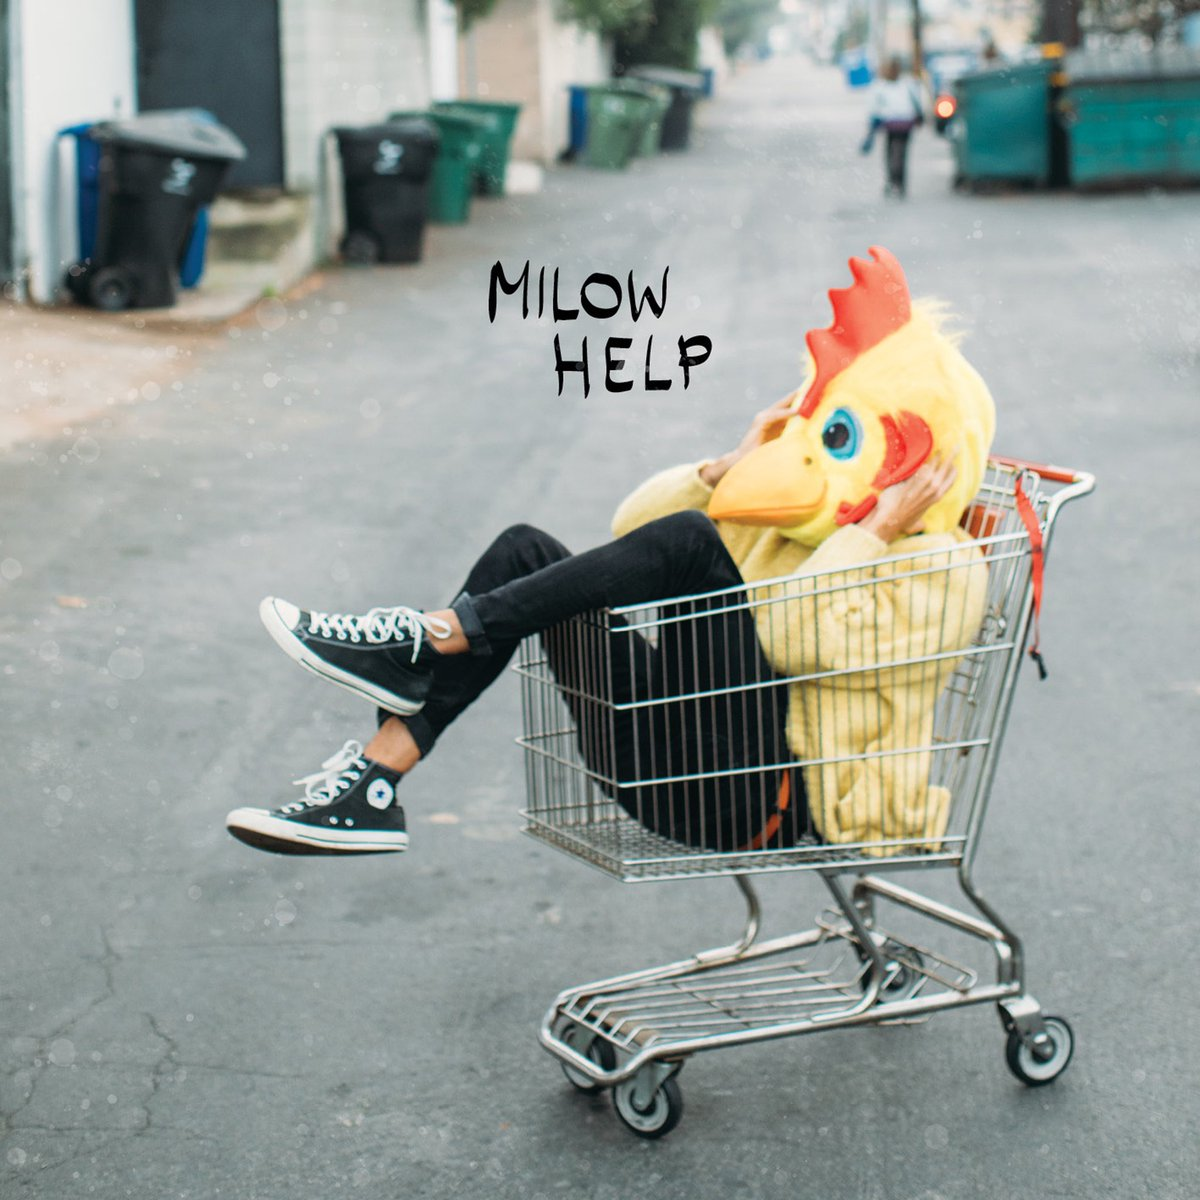 Milow On Twitter I Ve Got Some Exciting News To Share New Single Help The 2nd Single From My Upcoming Studio Album Lean Into Me Is Coming Soon Photo By Kevinzacher Artwork